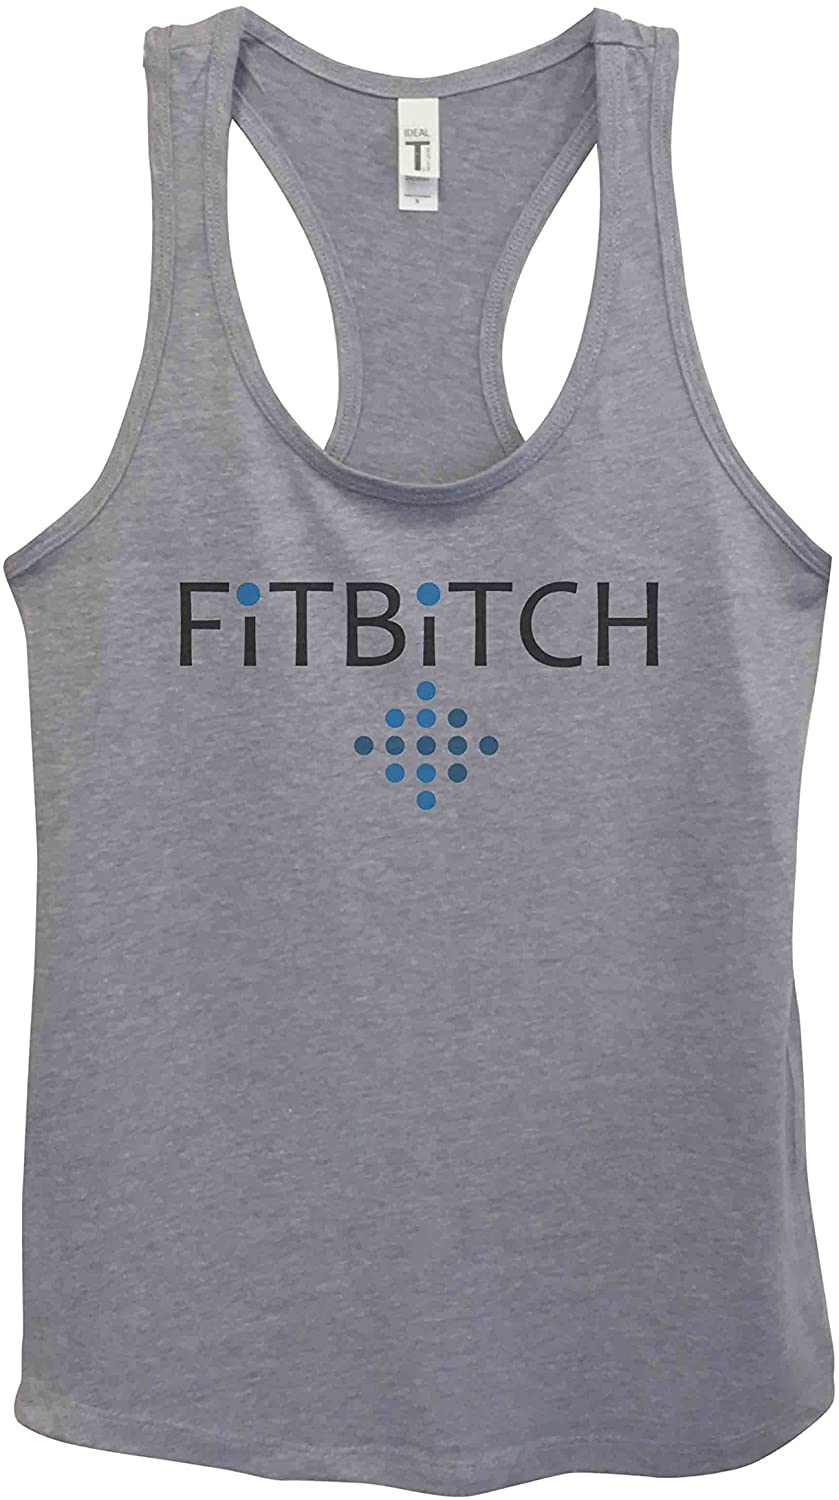 Funny Saying Womens Workout Tanks Fitbitch Royaltee Gym Shirts Collection Large, Grey